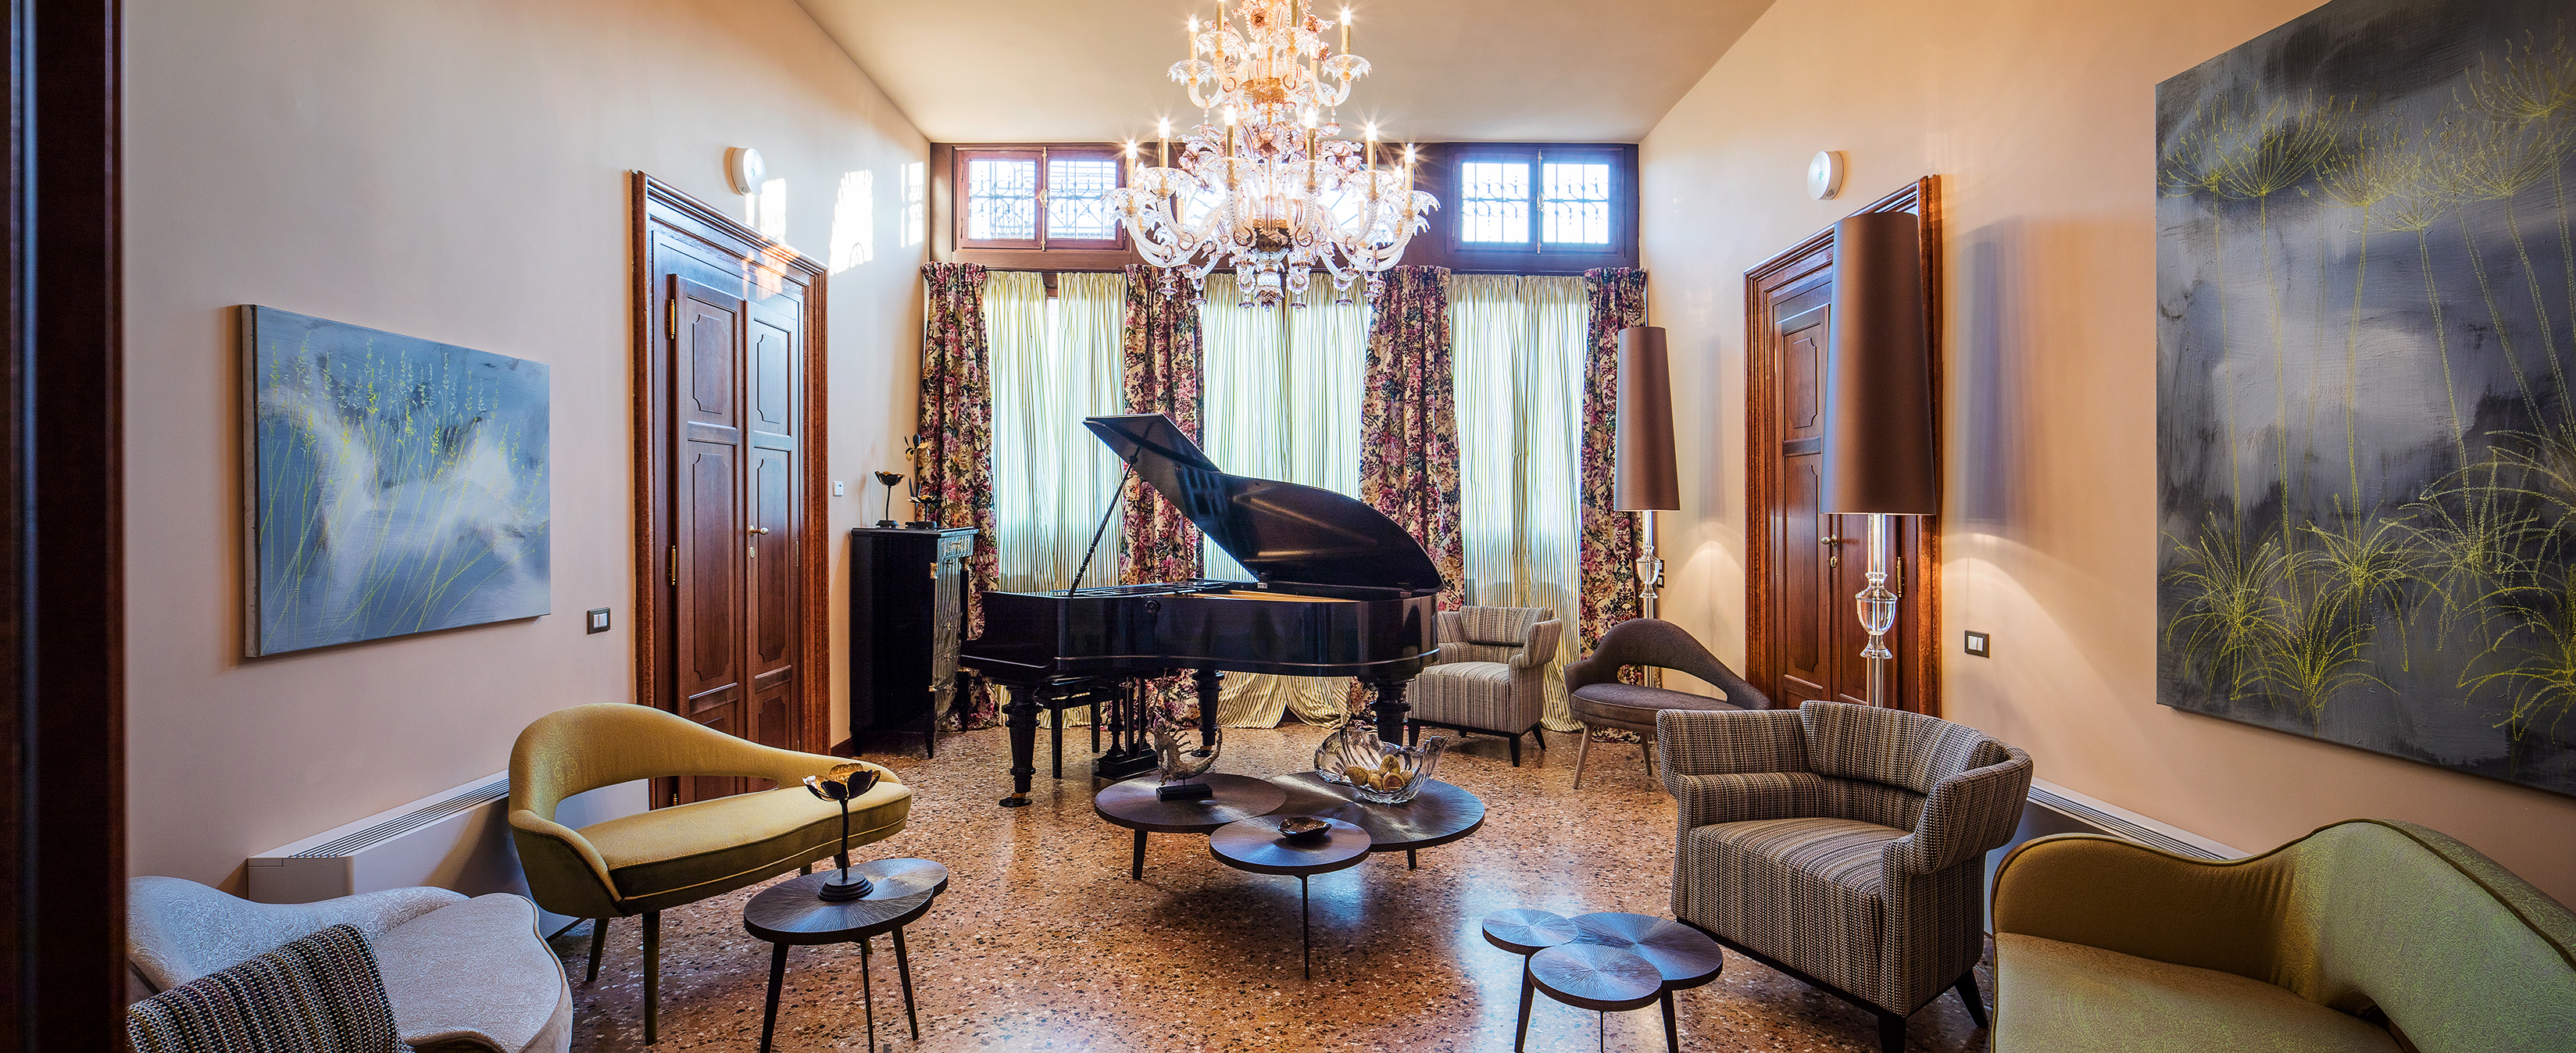 Music Room Hotel Heureka invites you to discover their Little Black Book of Secrets - EAT LOVE SAVOR International luxury lifestyle magazine and bookazines